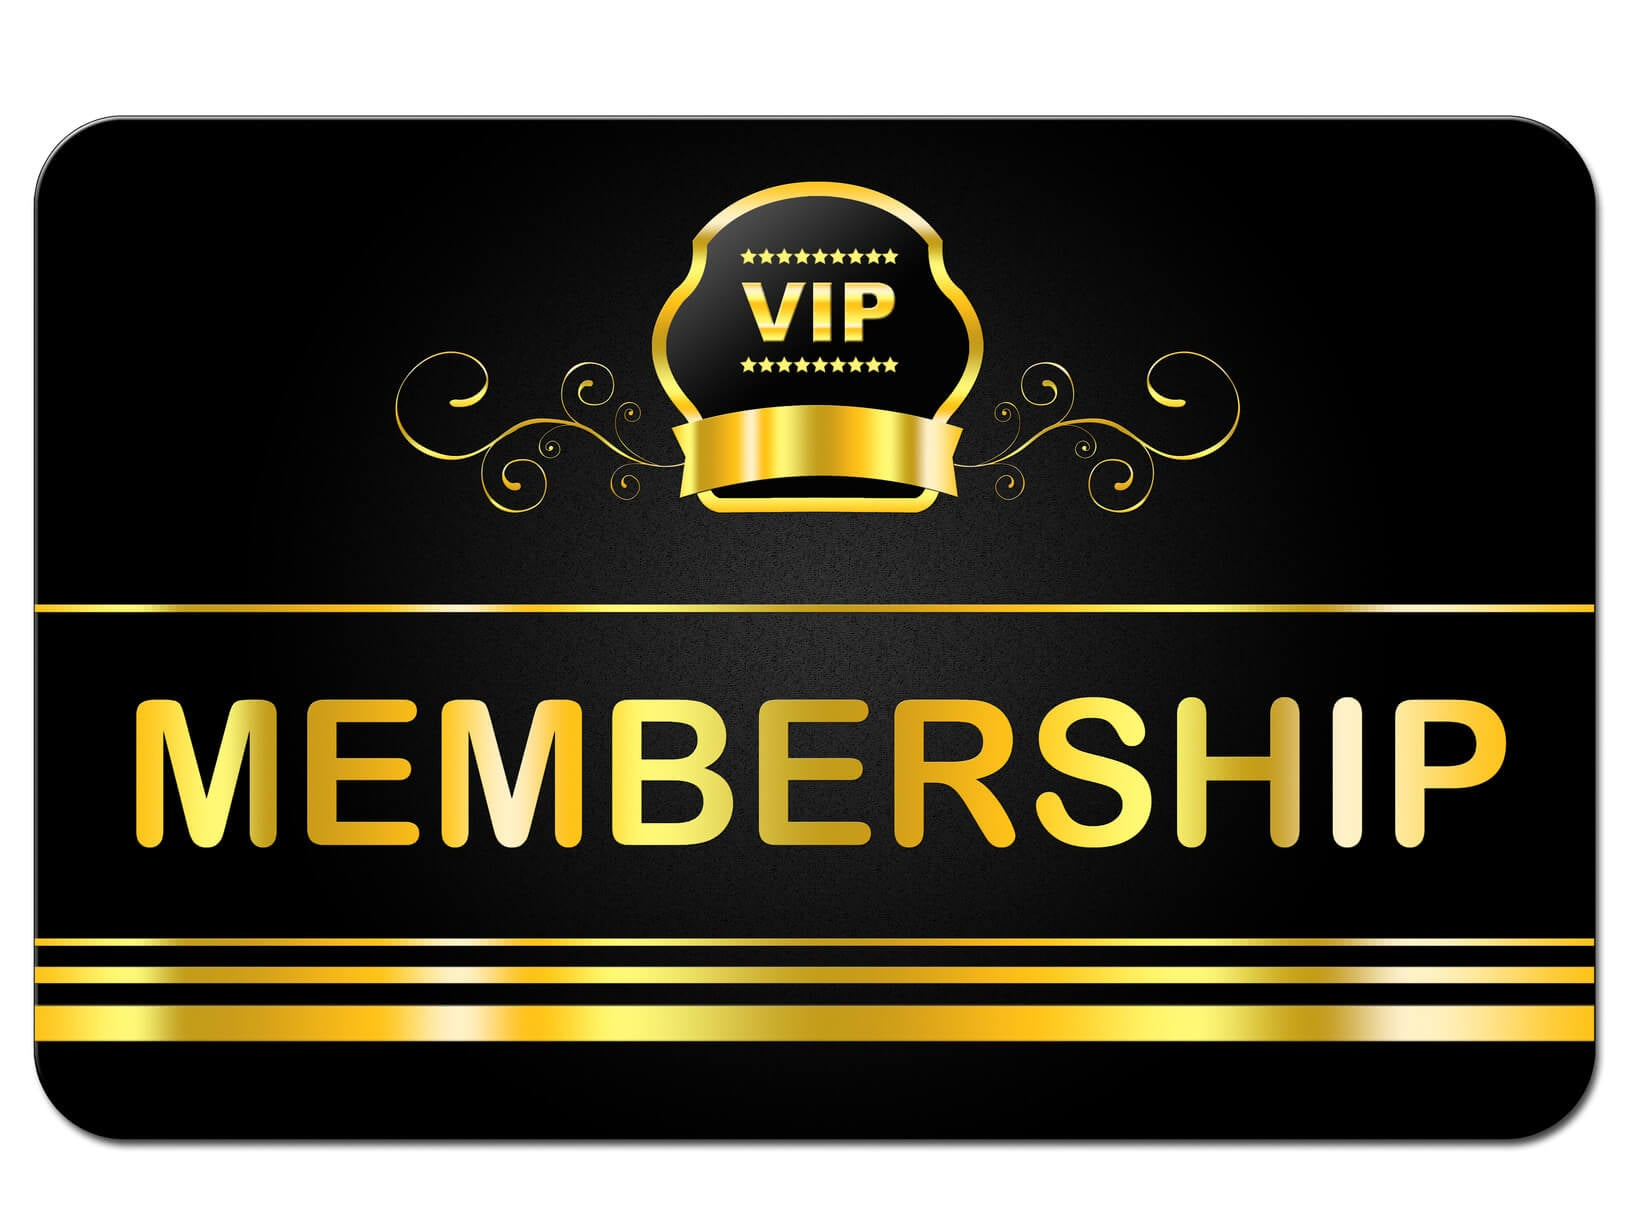 VIP Membership coming soon!